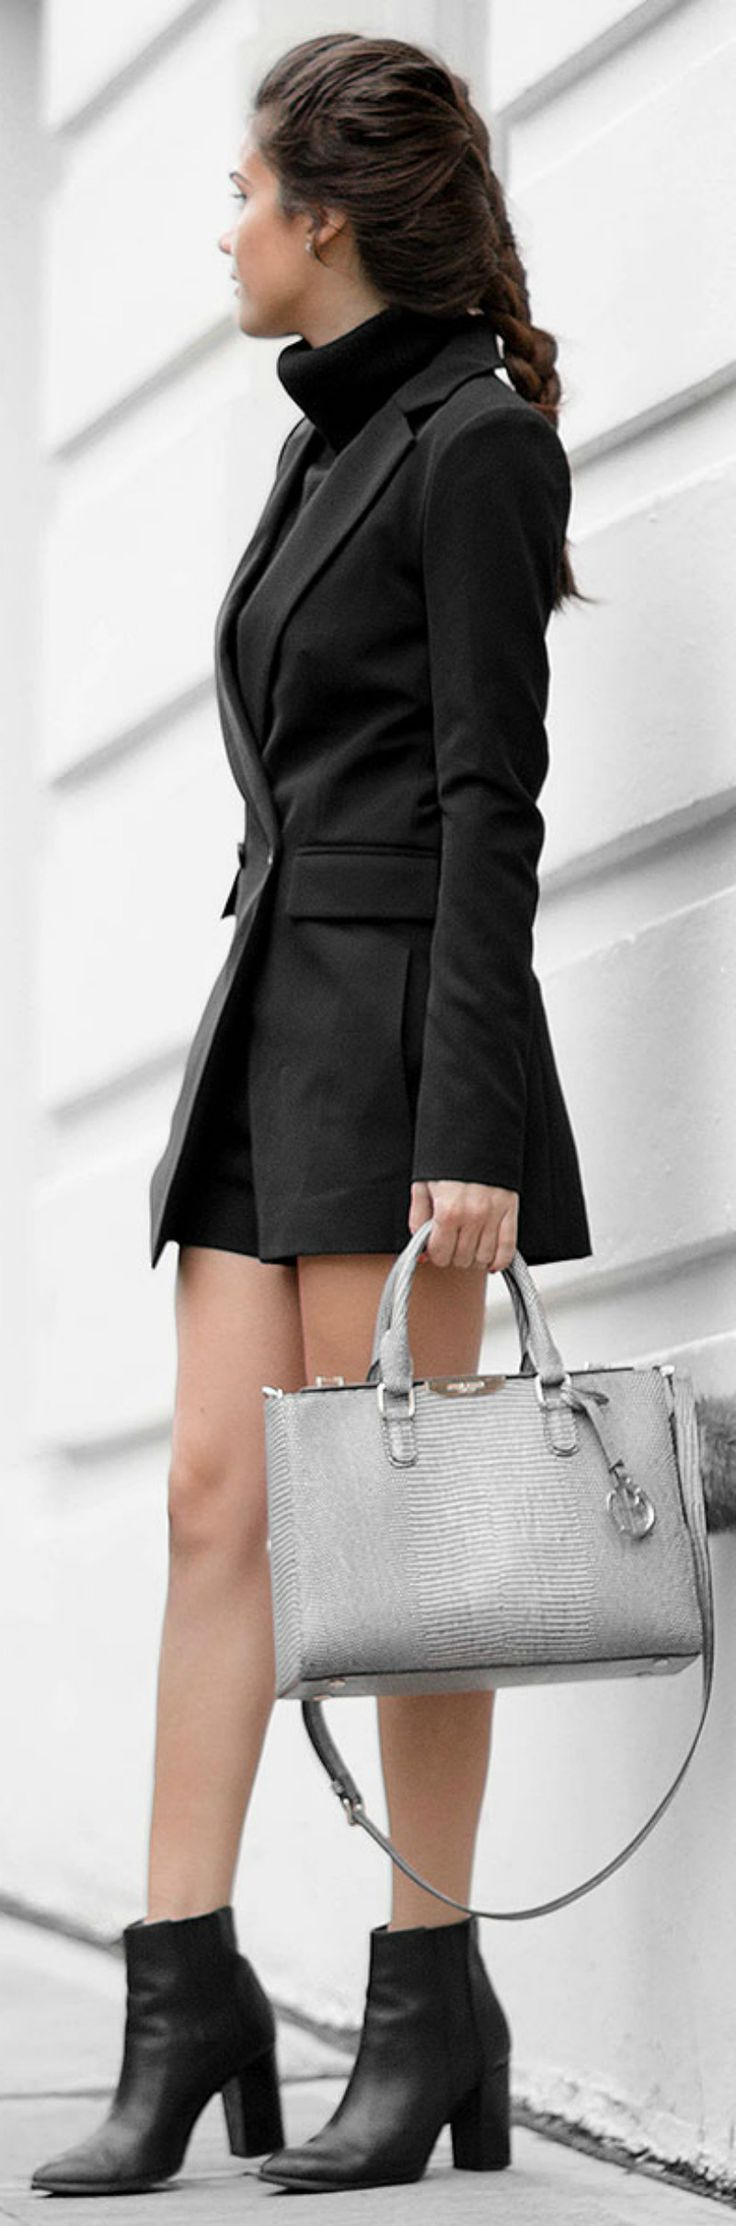 A blazer romper suit + pair of chunky ankle boots + edgy and alternative outfit + Sarah Butler. Romper Dress: Lulu's, Sweater: Bluefly, Satchel: Henri Bendel, Boots: Seychelles.